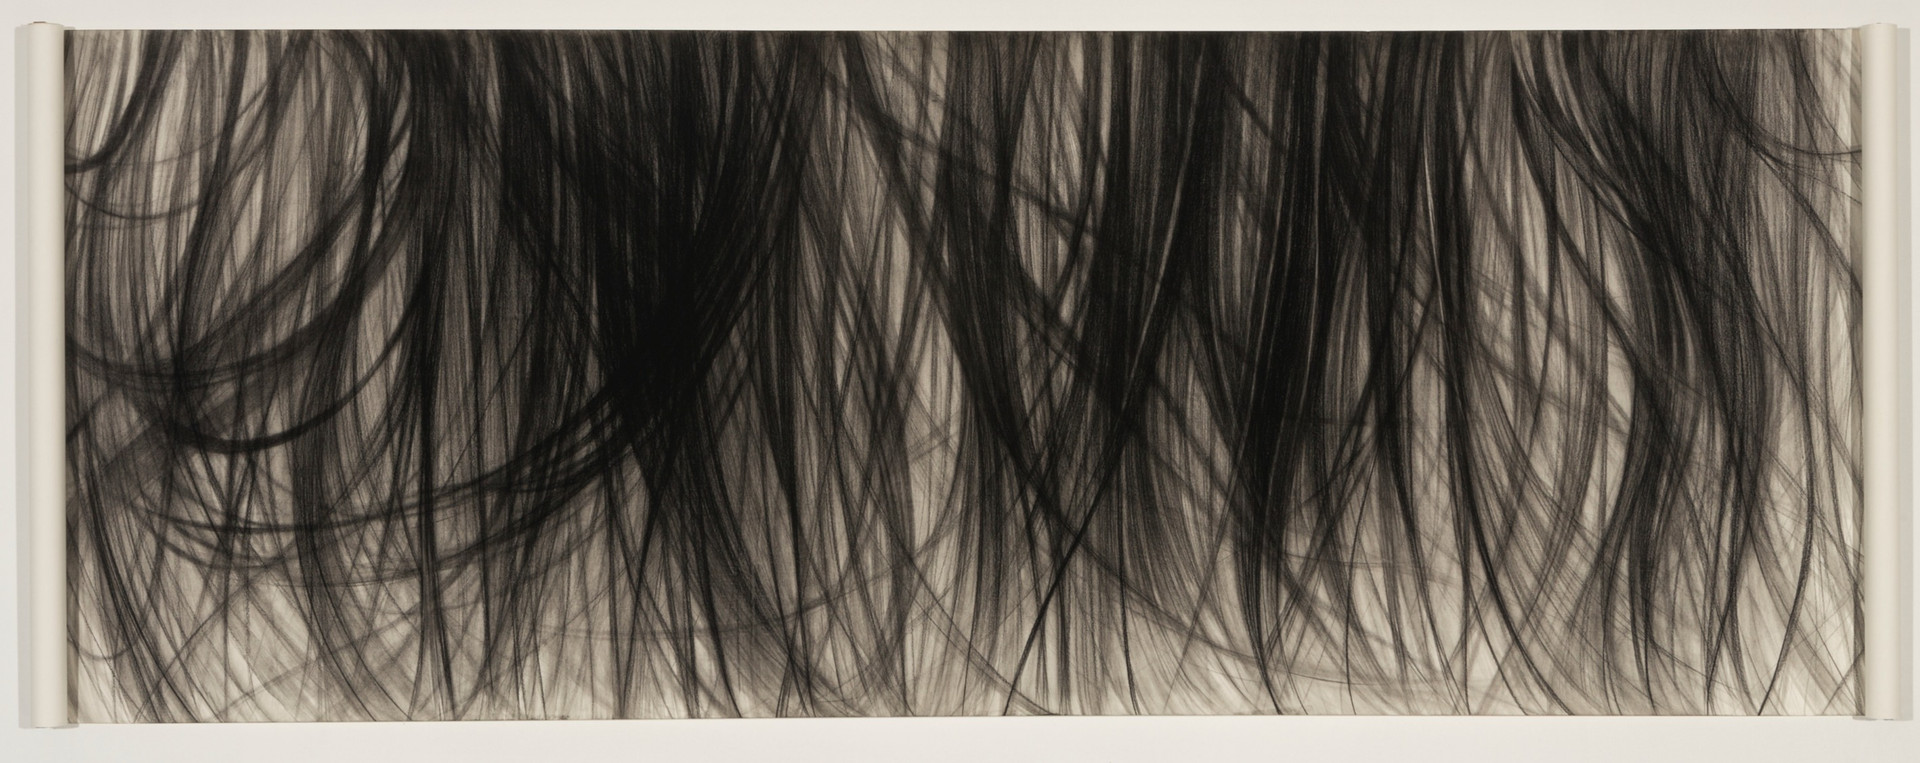 Breeze#2, charcoal on paper with scrolls, 36 x 96 inches